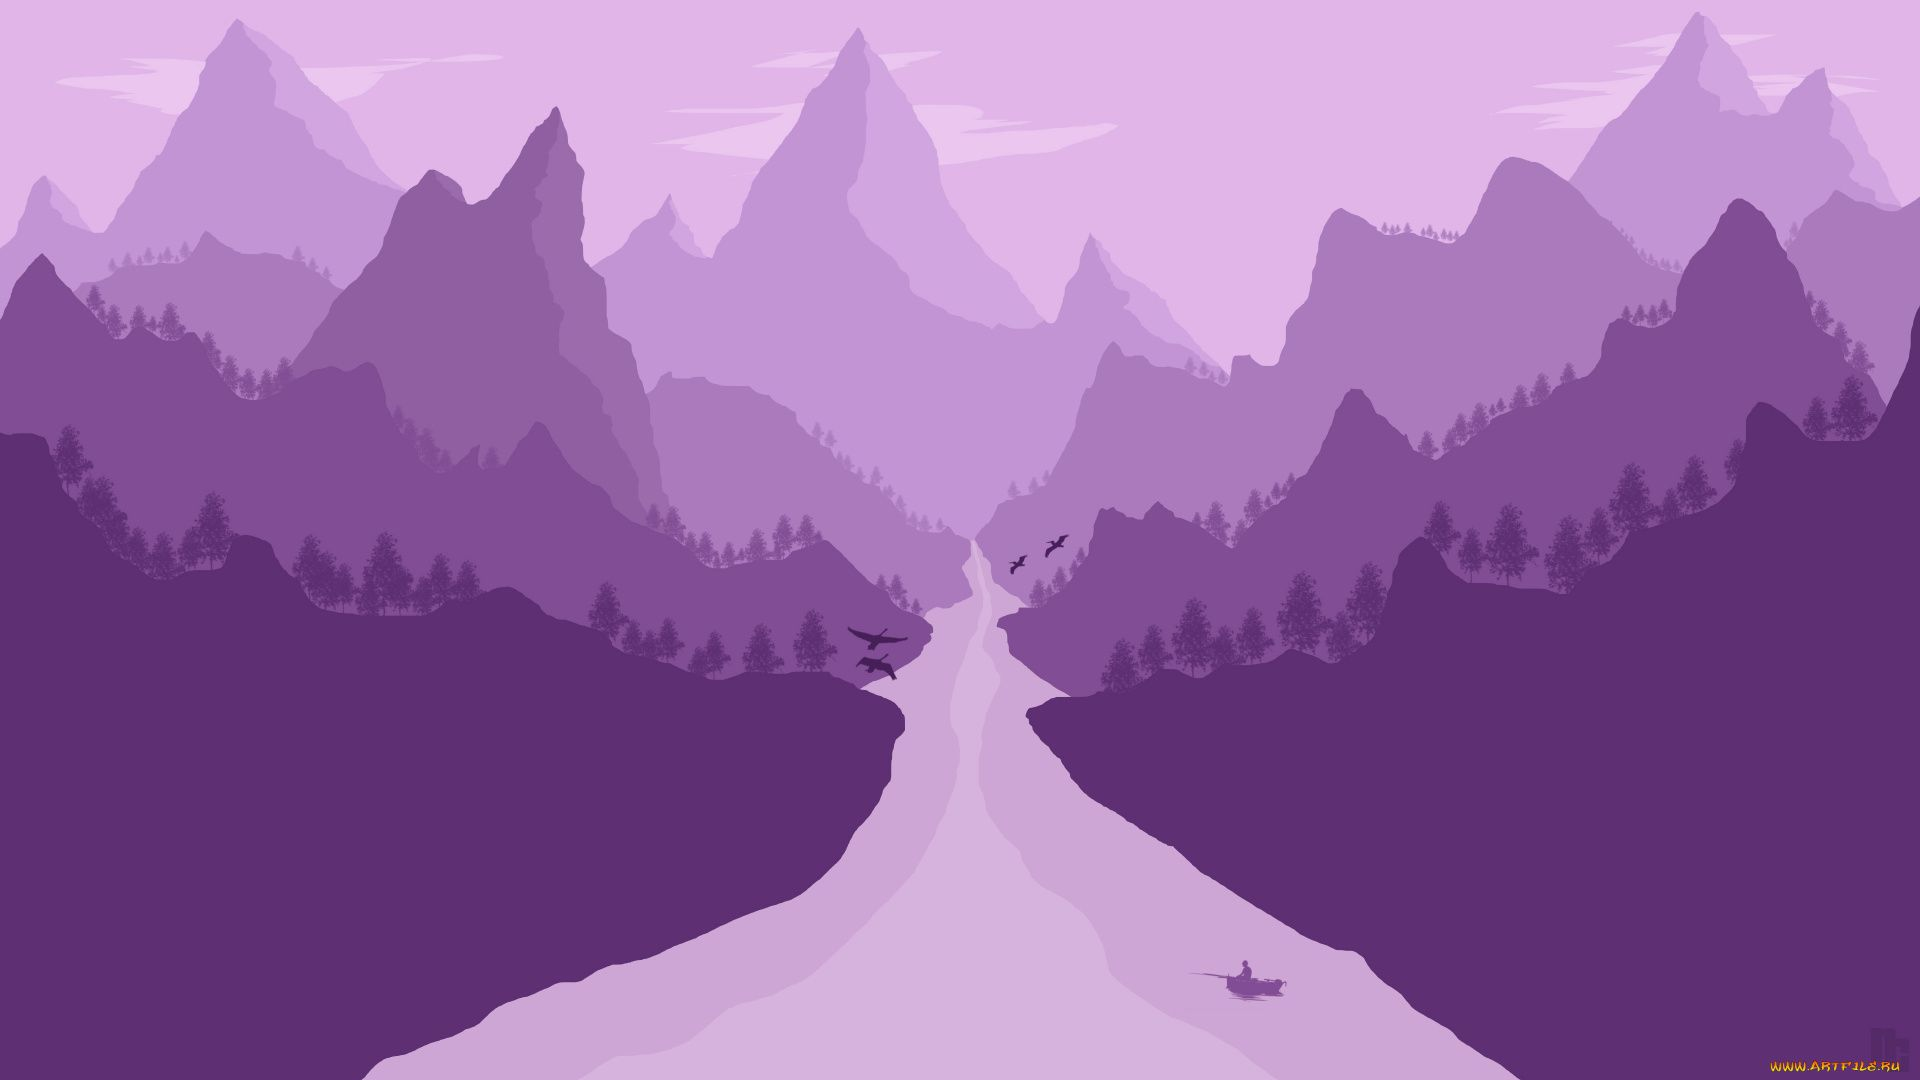 Minimalism Mountains, Mountains Vector